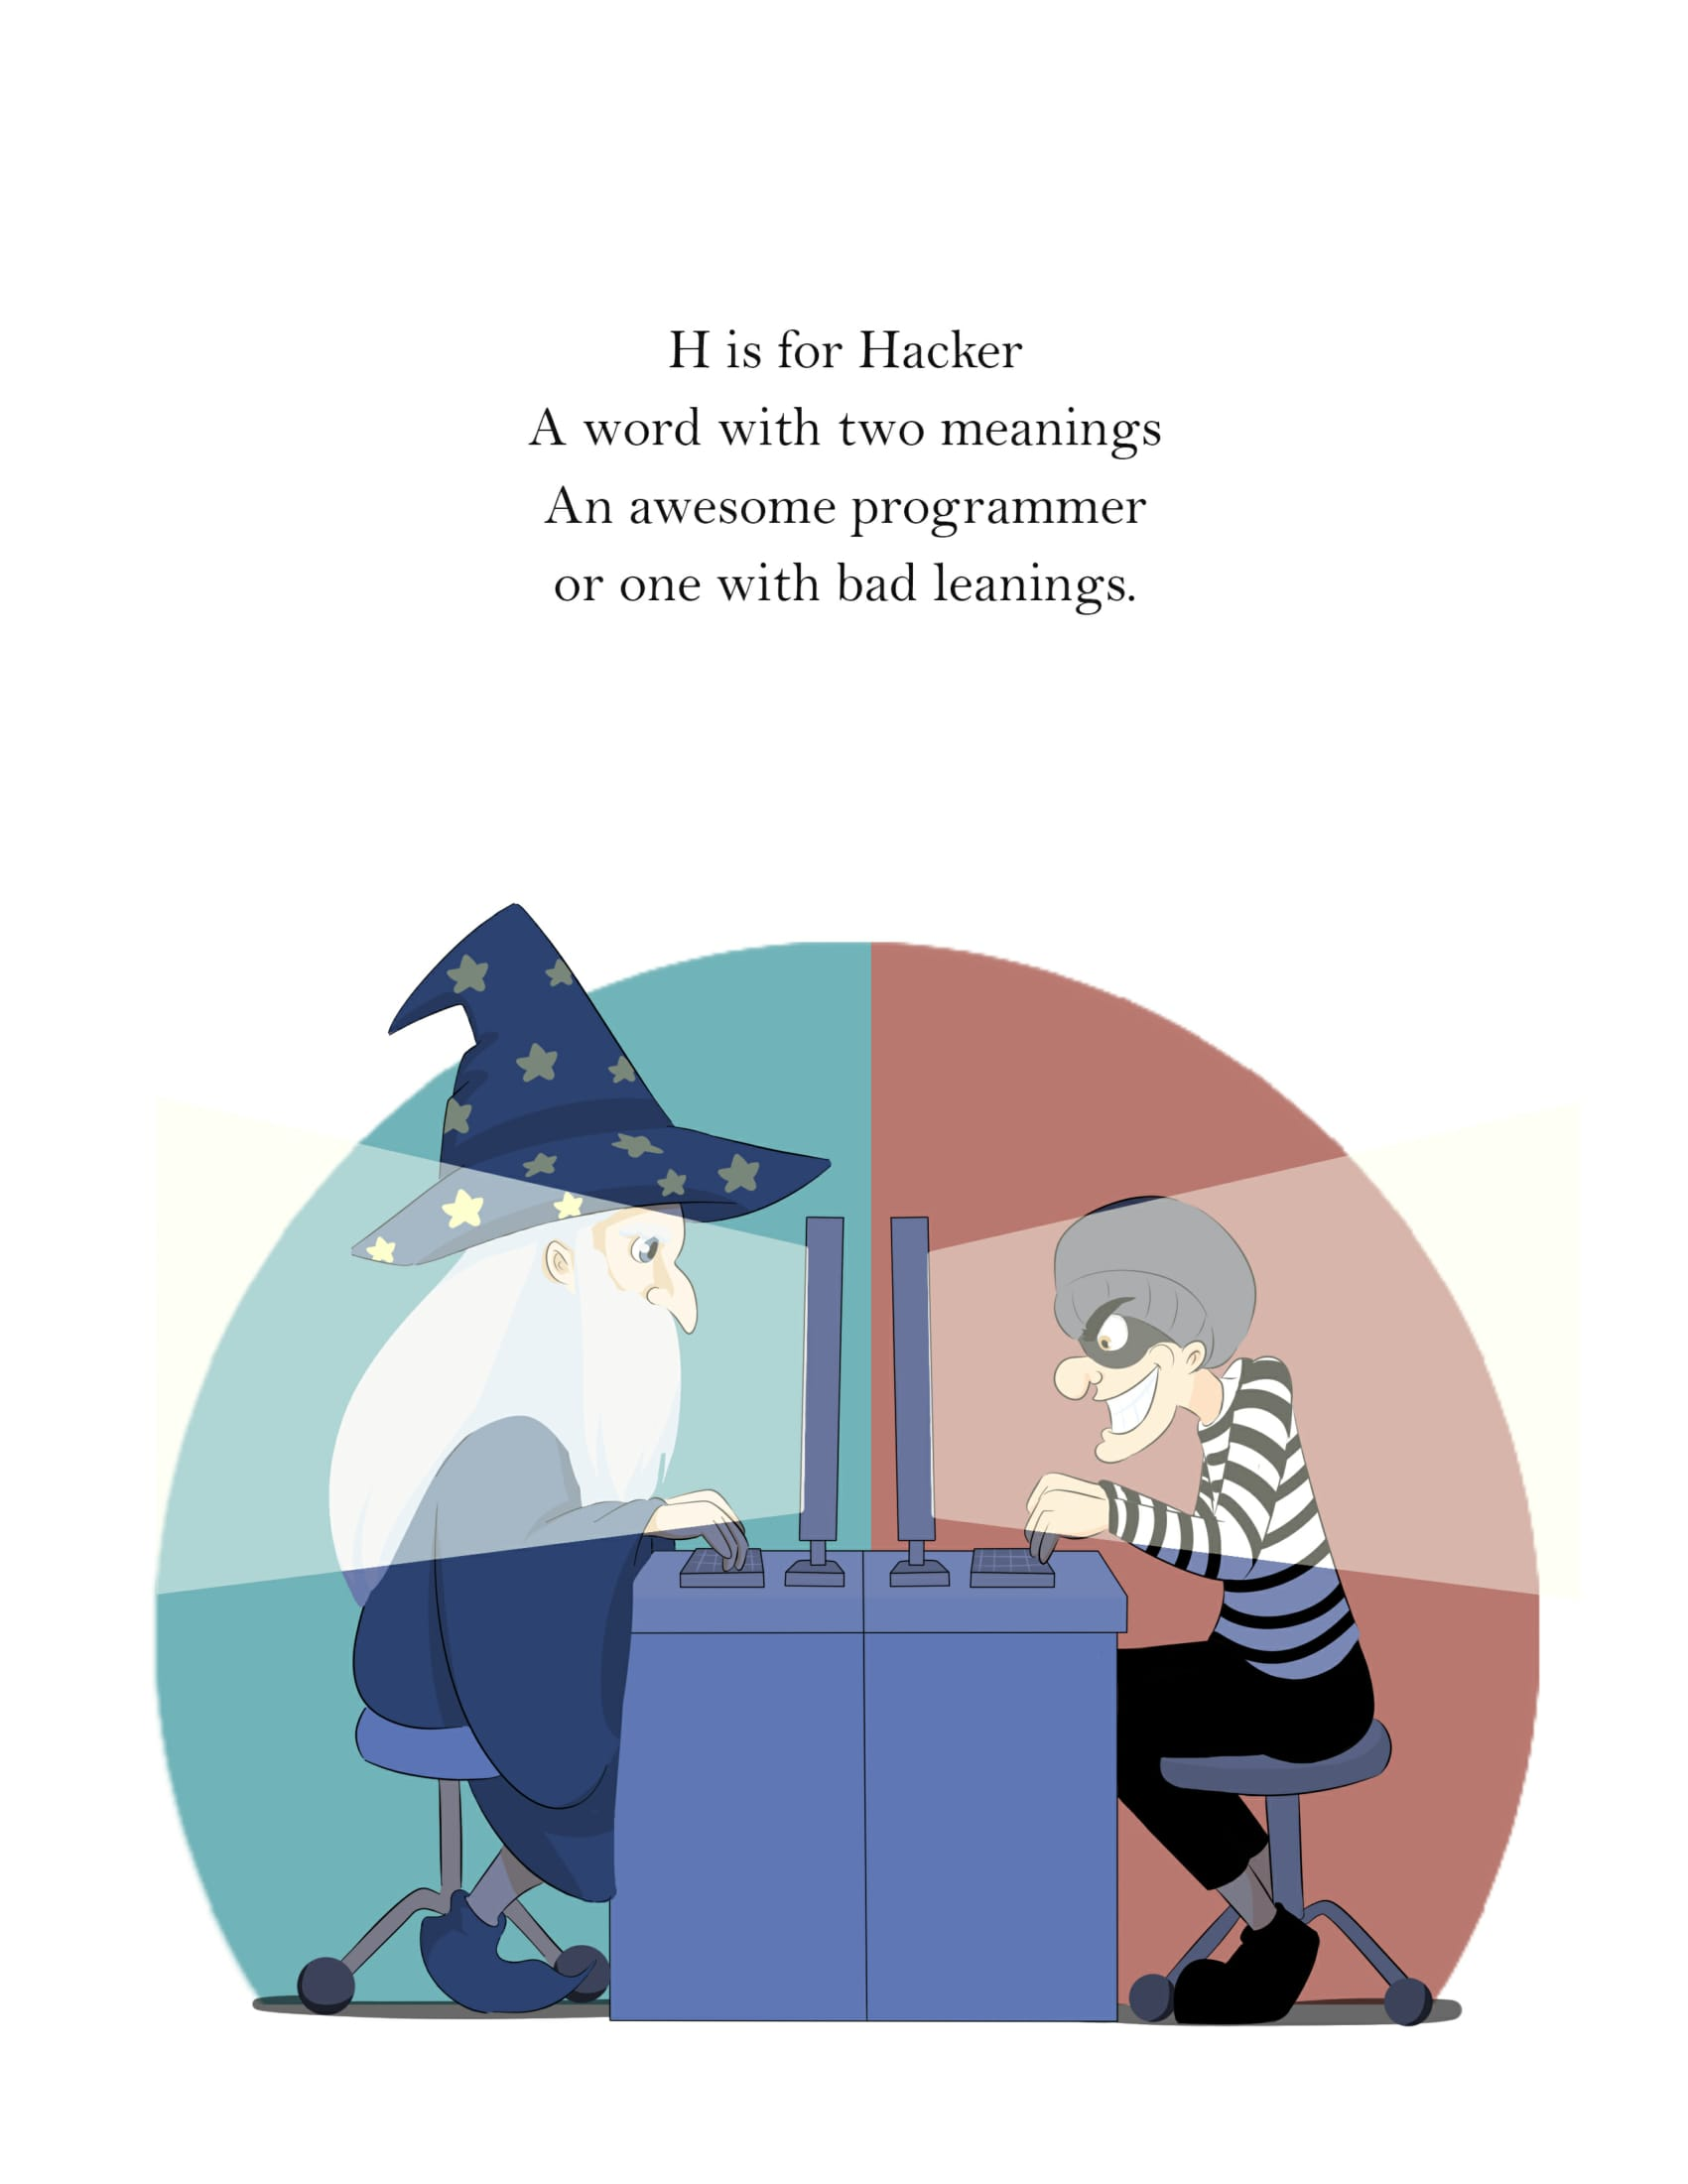 H is for Hacker